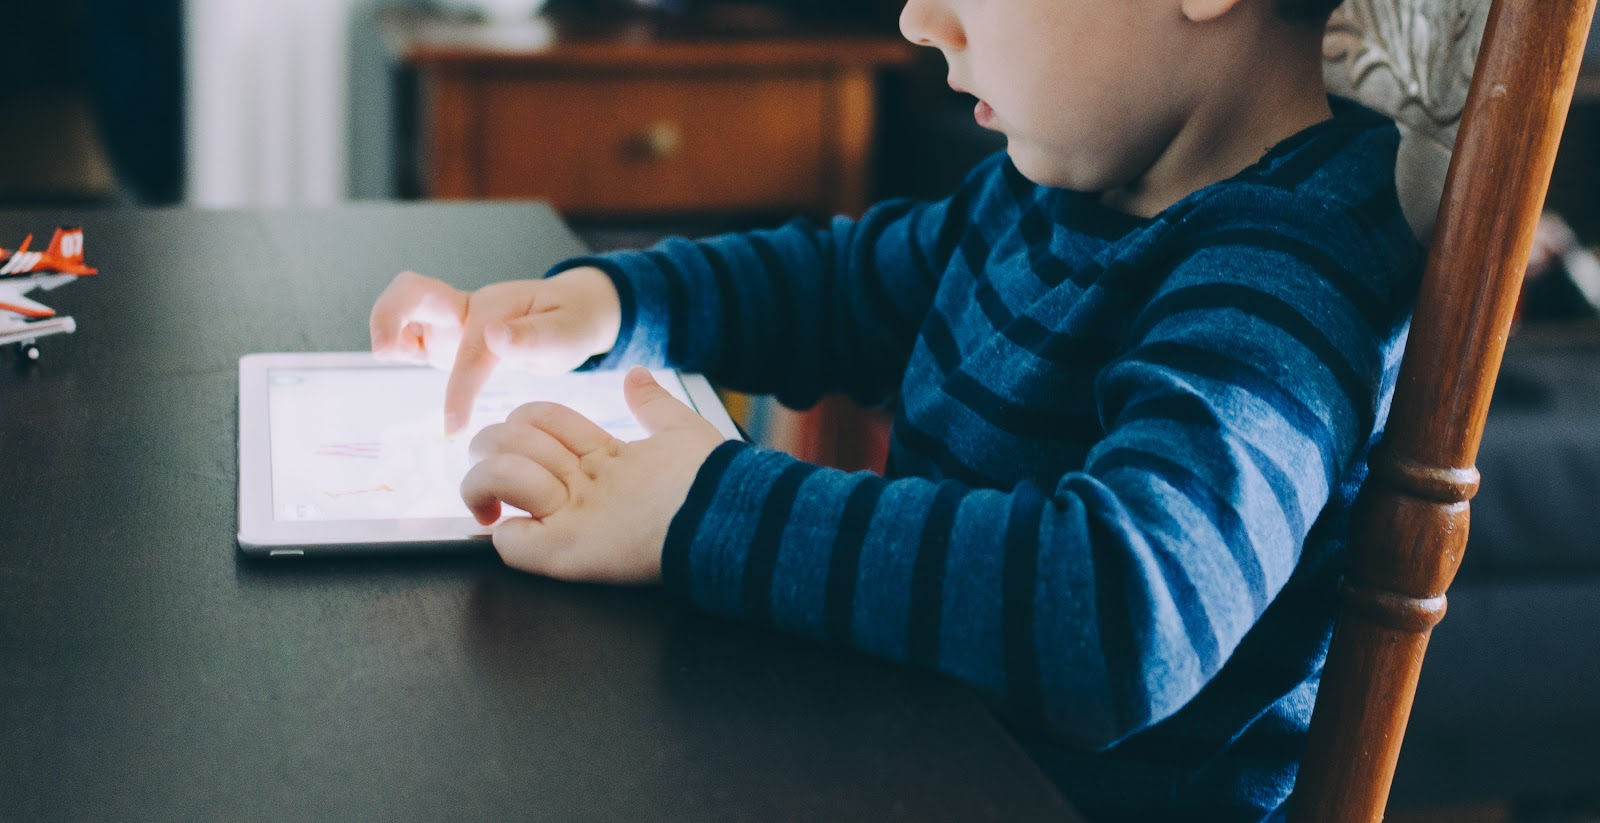 This is an image of a boy who is seated at a table using a tablet. This is what your child could look like after building a wifi robot at home with a robotics kit for kids.